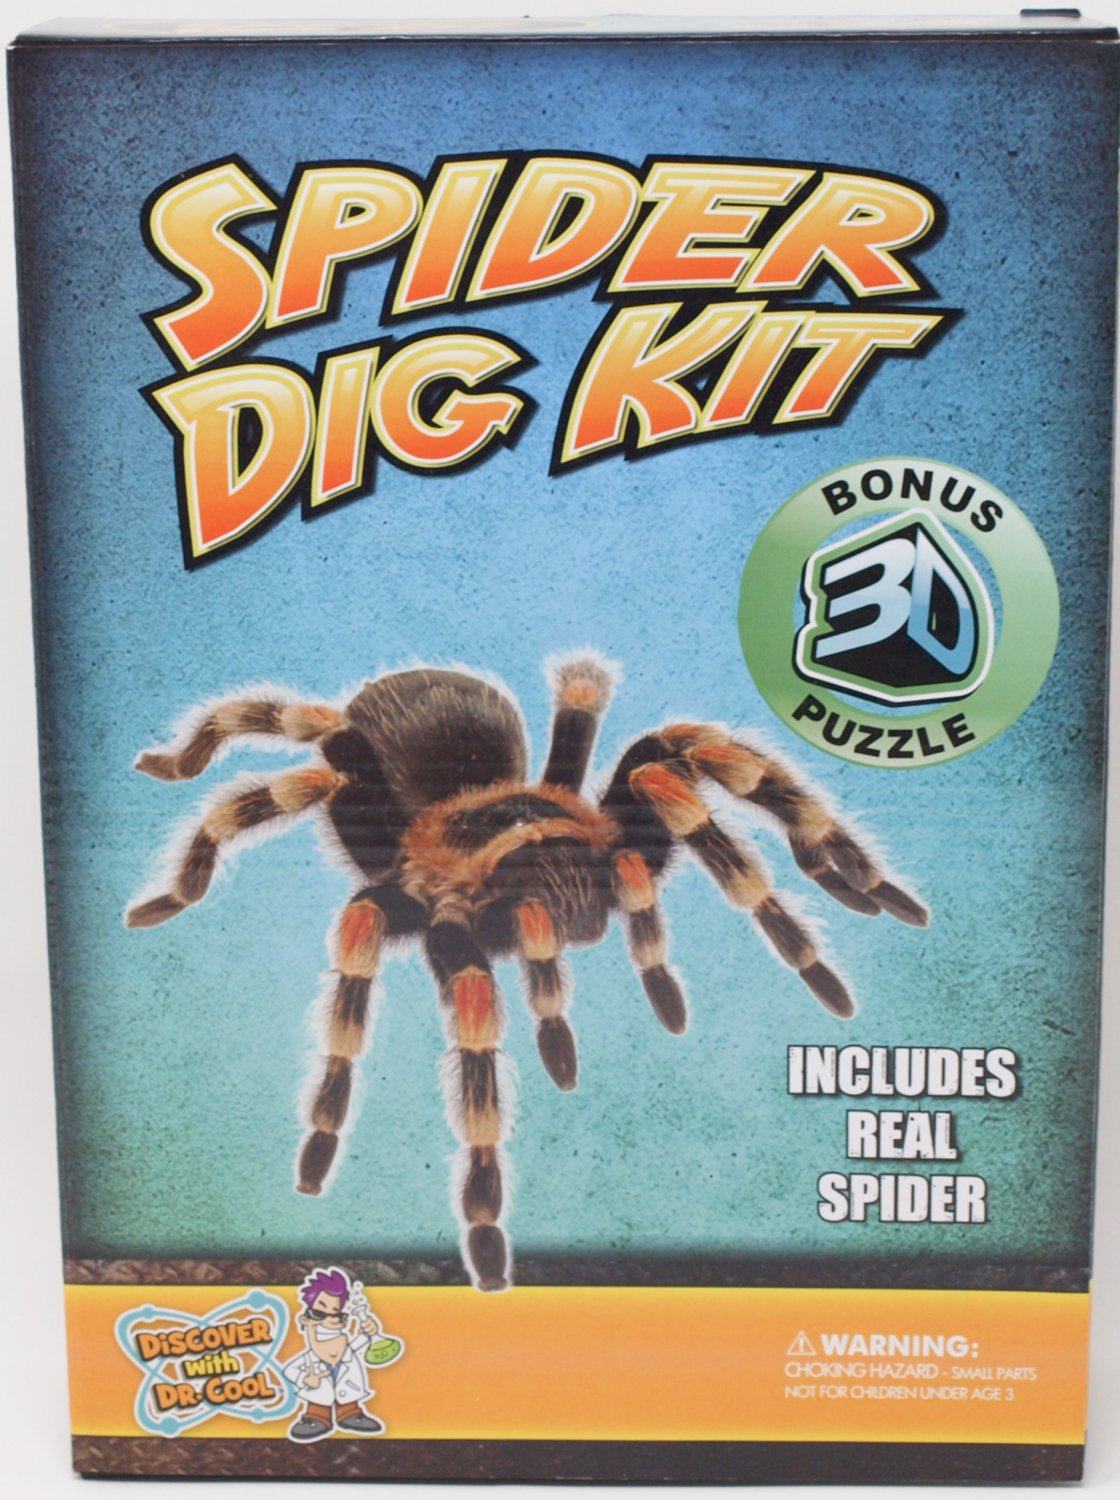 Spider Dig Kit with Bonus 3D Puzzle, Excavate A Real Spider Science Kit by Discover with Dr. Cool